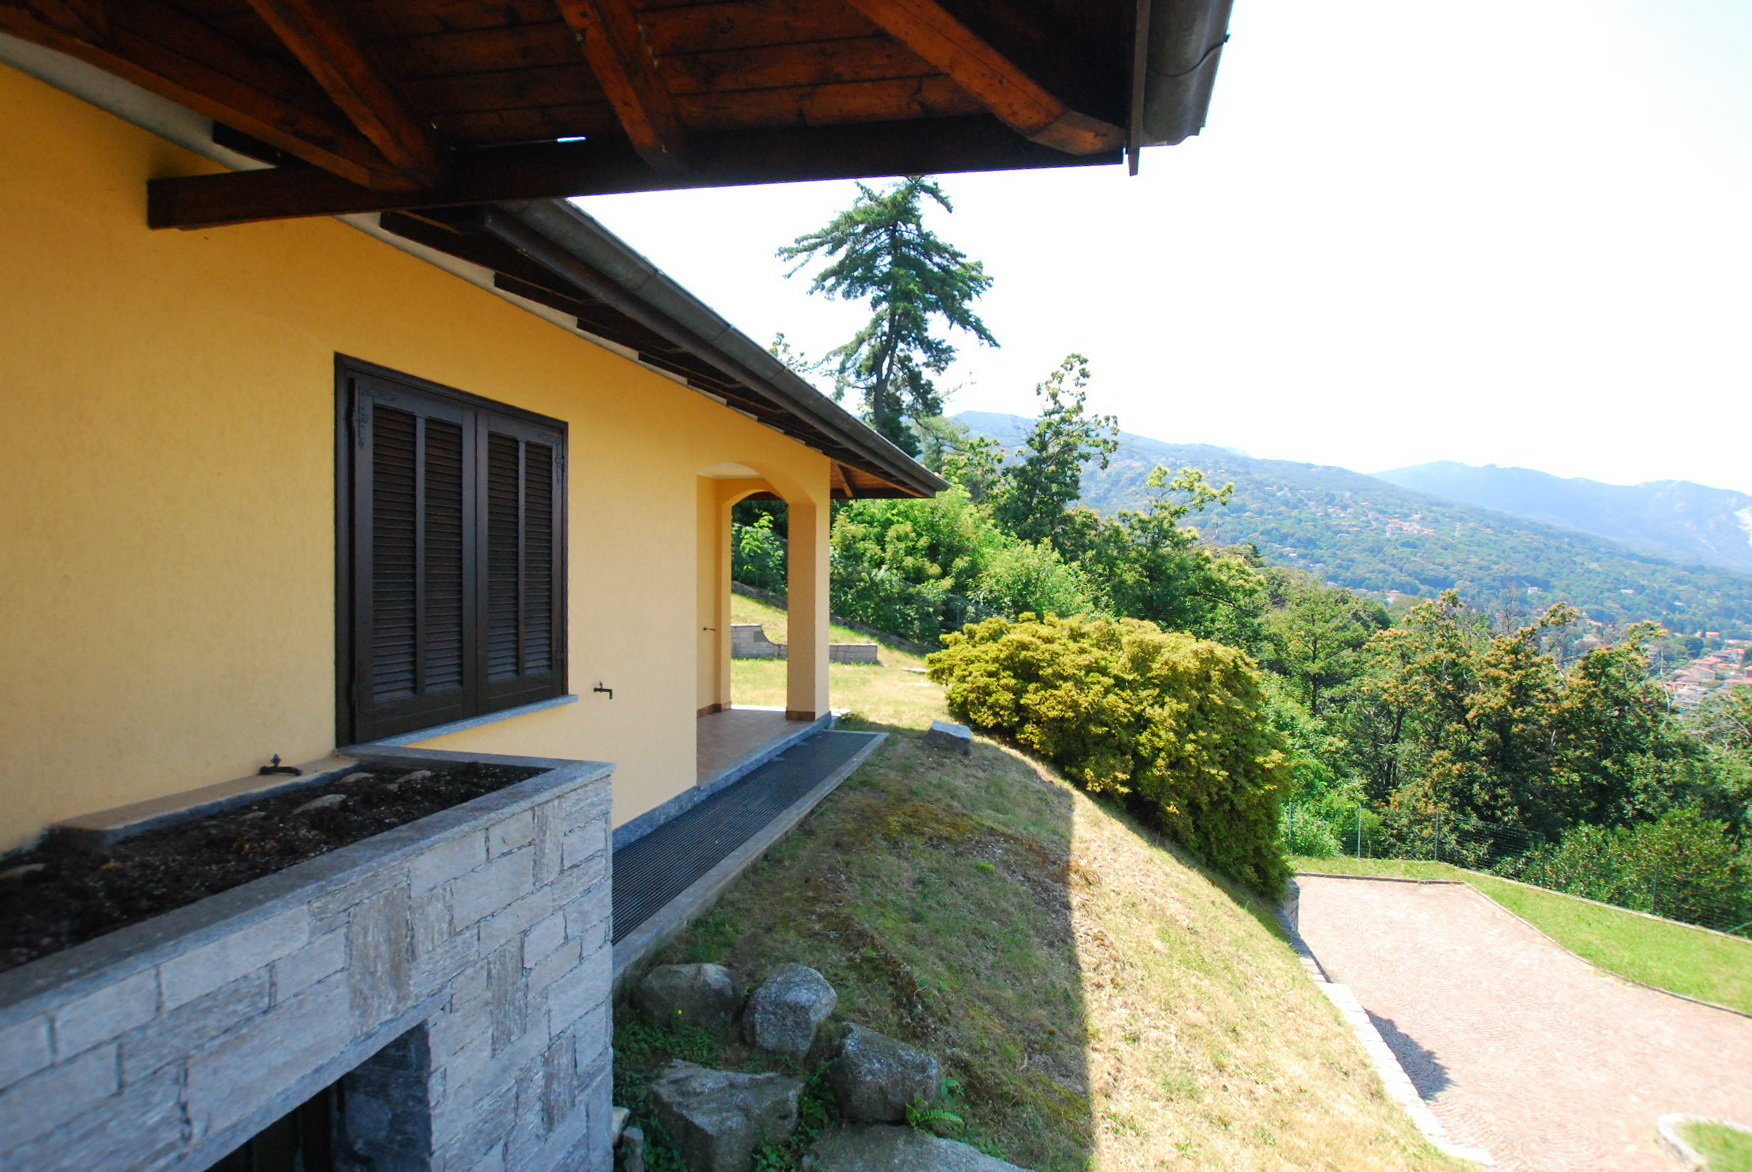 Villa for rent in Stresa with garden and lakeview